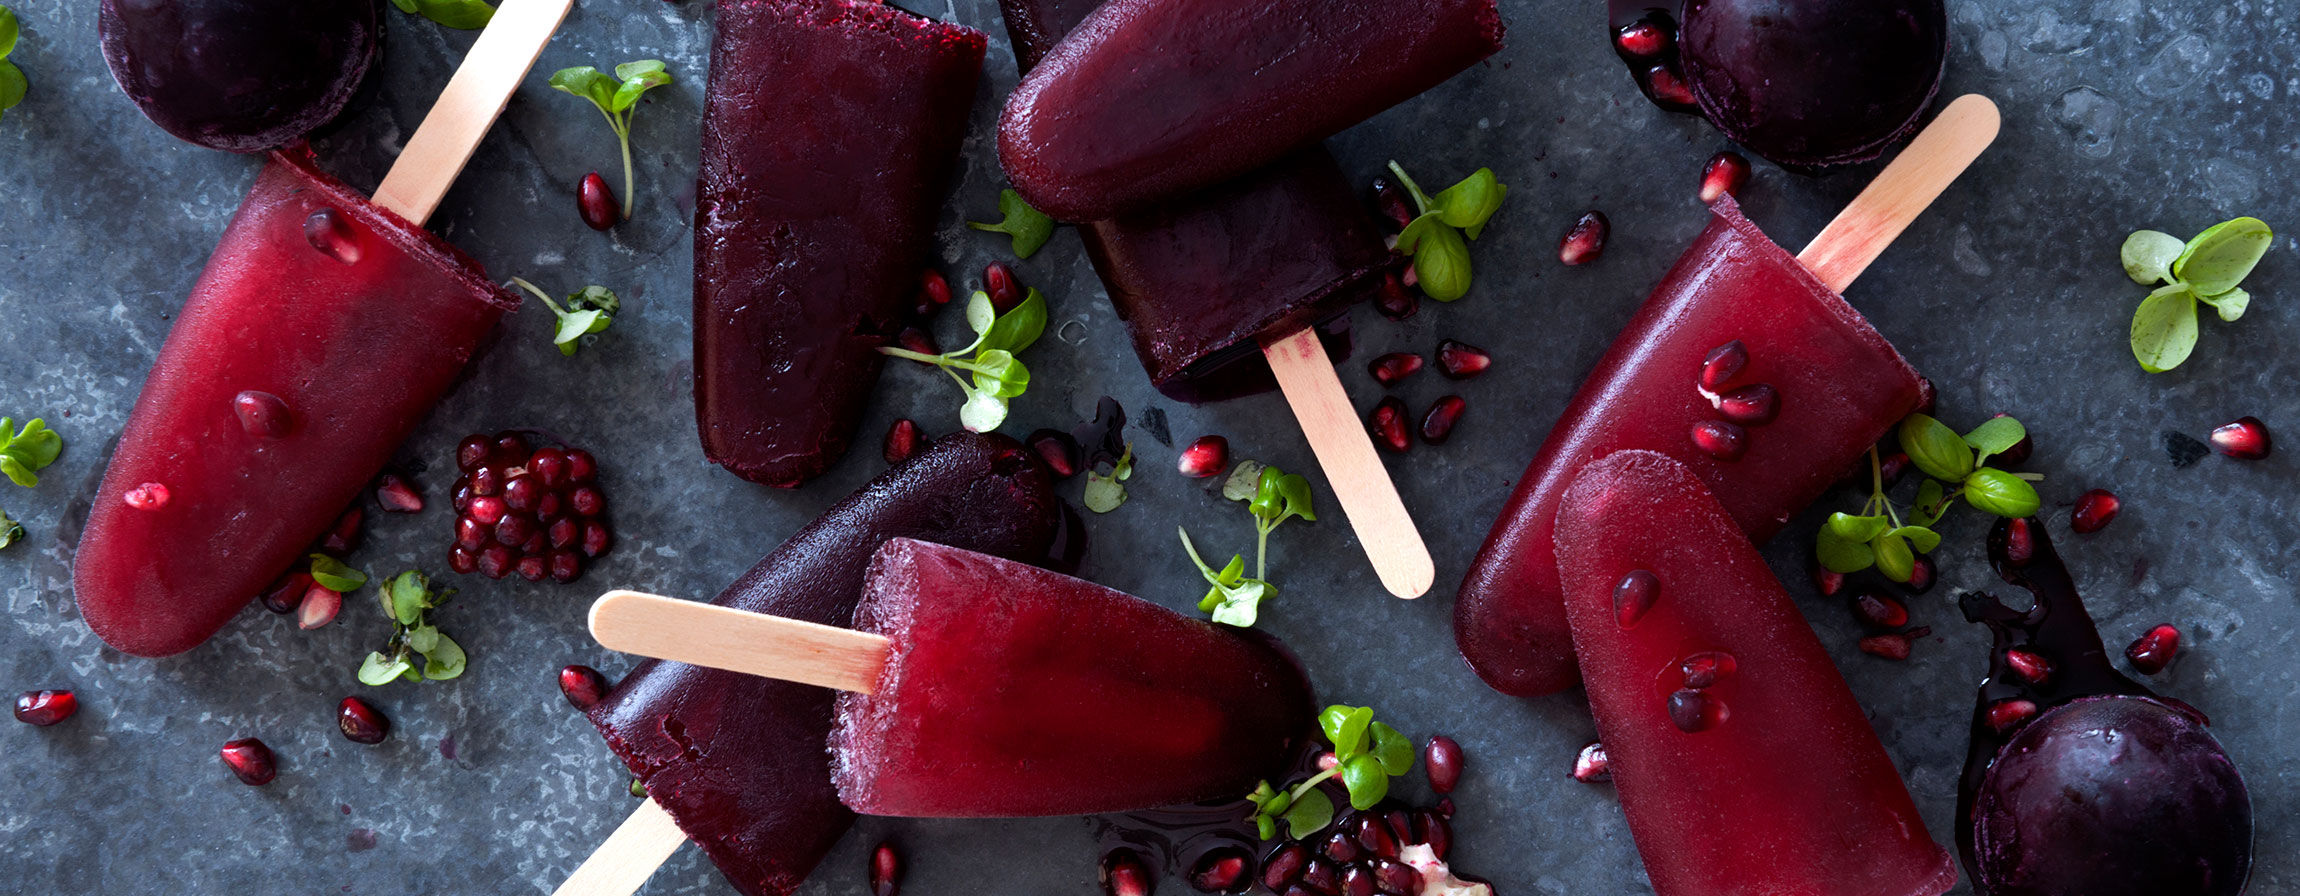 Pomegranate Ice Poles food styling - banner